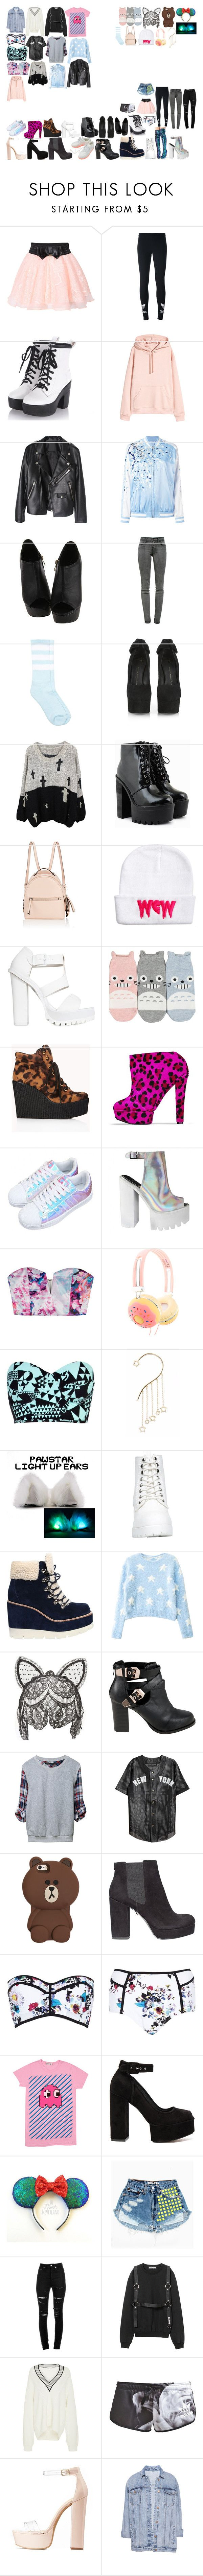 """""""Packing for Tour"""" by kaelighoffical ❤ liked on Polyvore featuring adidas Originals, P.A.R.O.S.H., J Brand, Giuseppe Zanotti, Fendi, Nly Shoes, Forever 21, Senso, Asilio and claire's"""